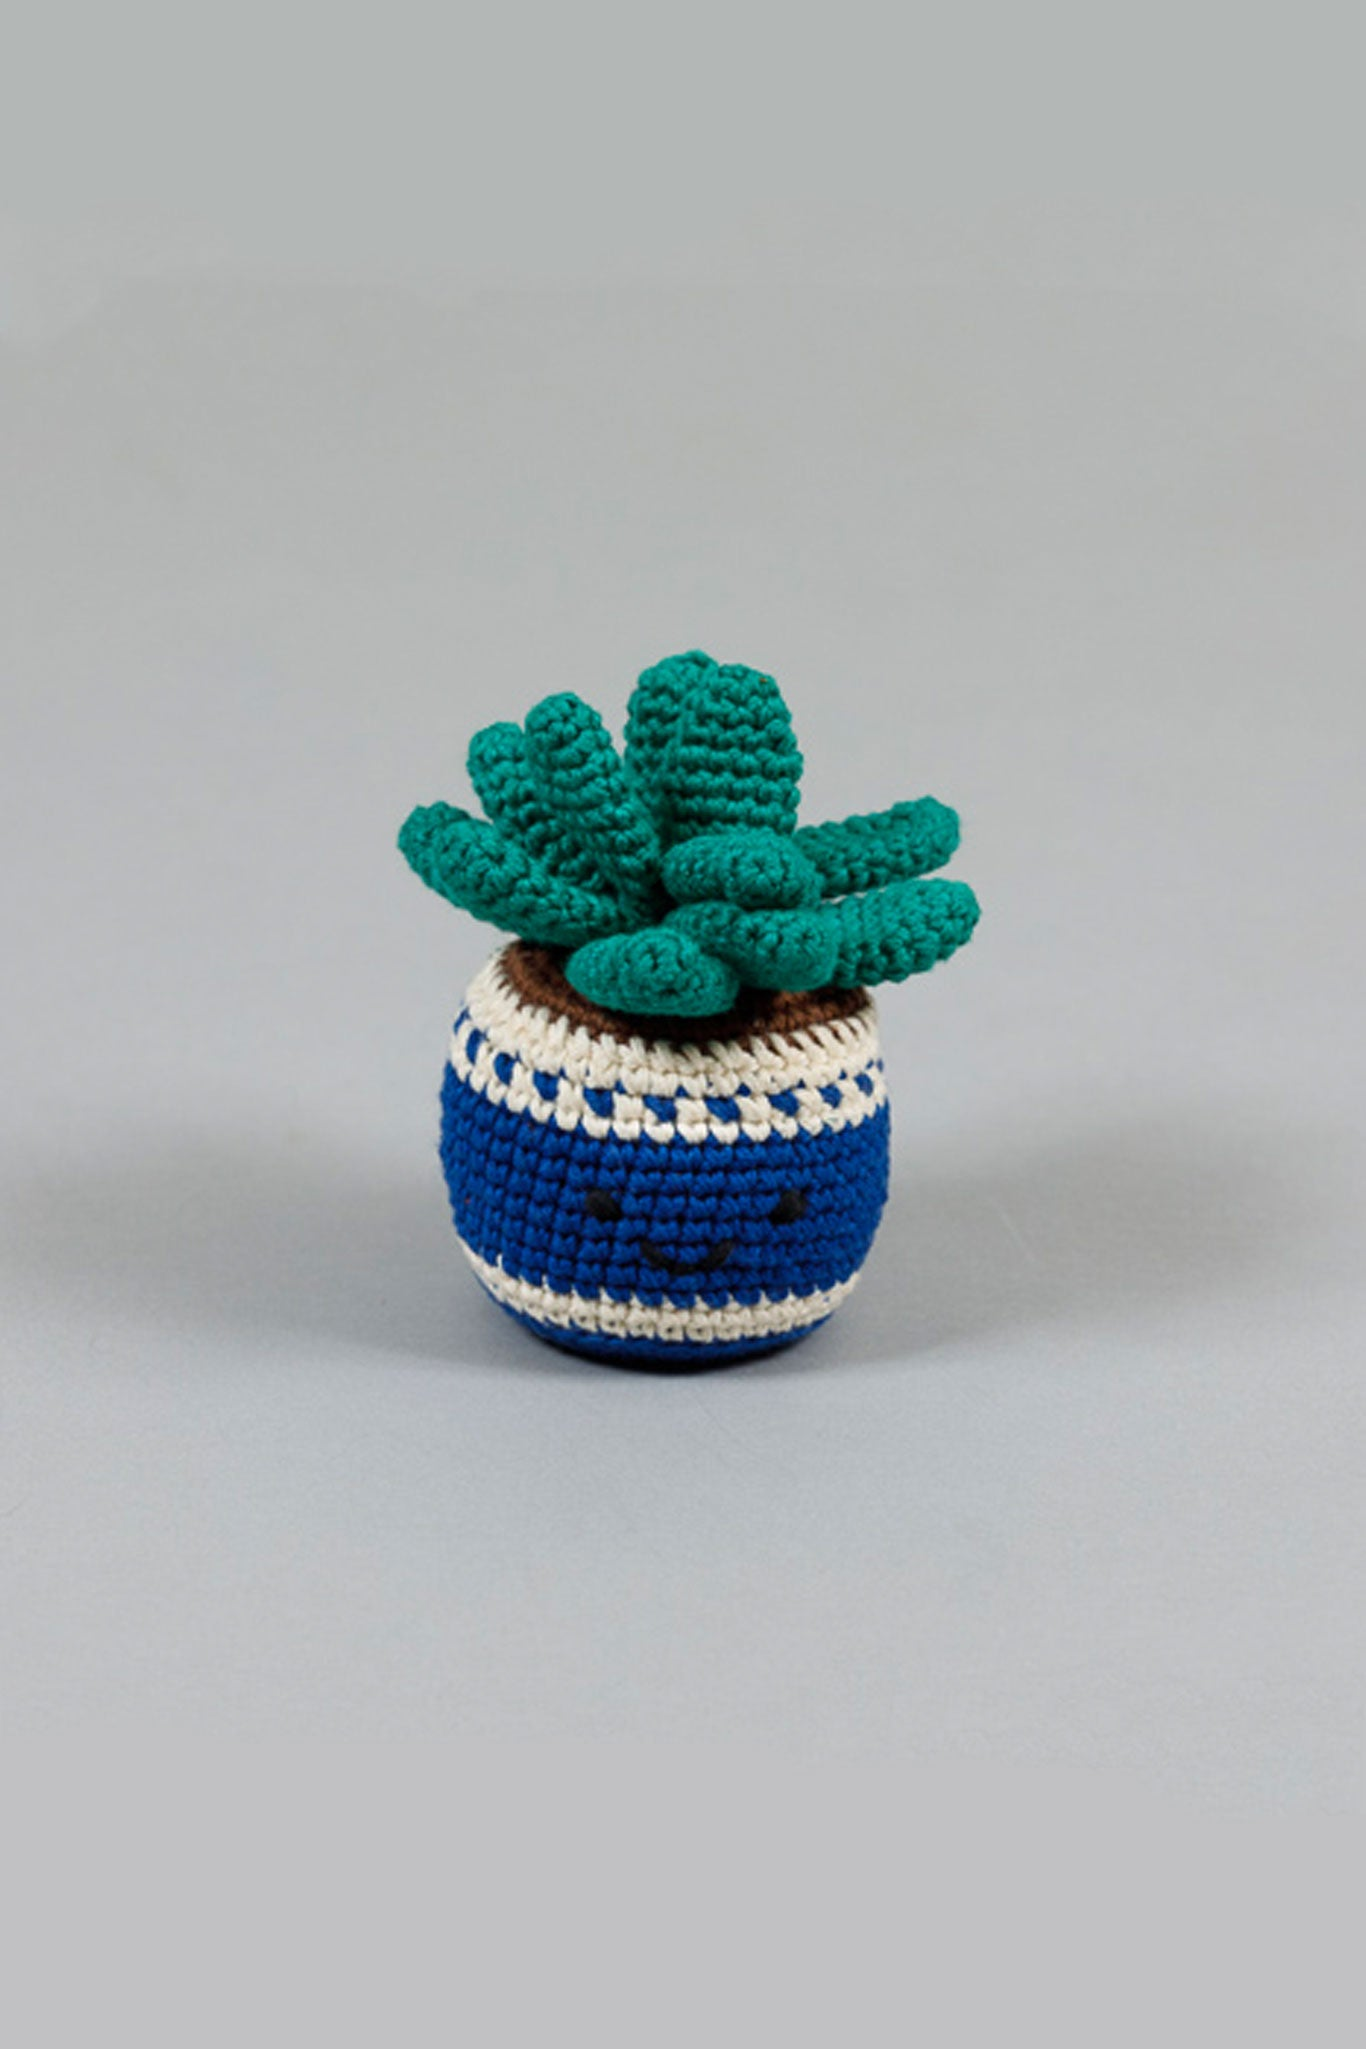 Ware of the Dog Crochet Cactus